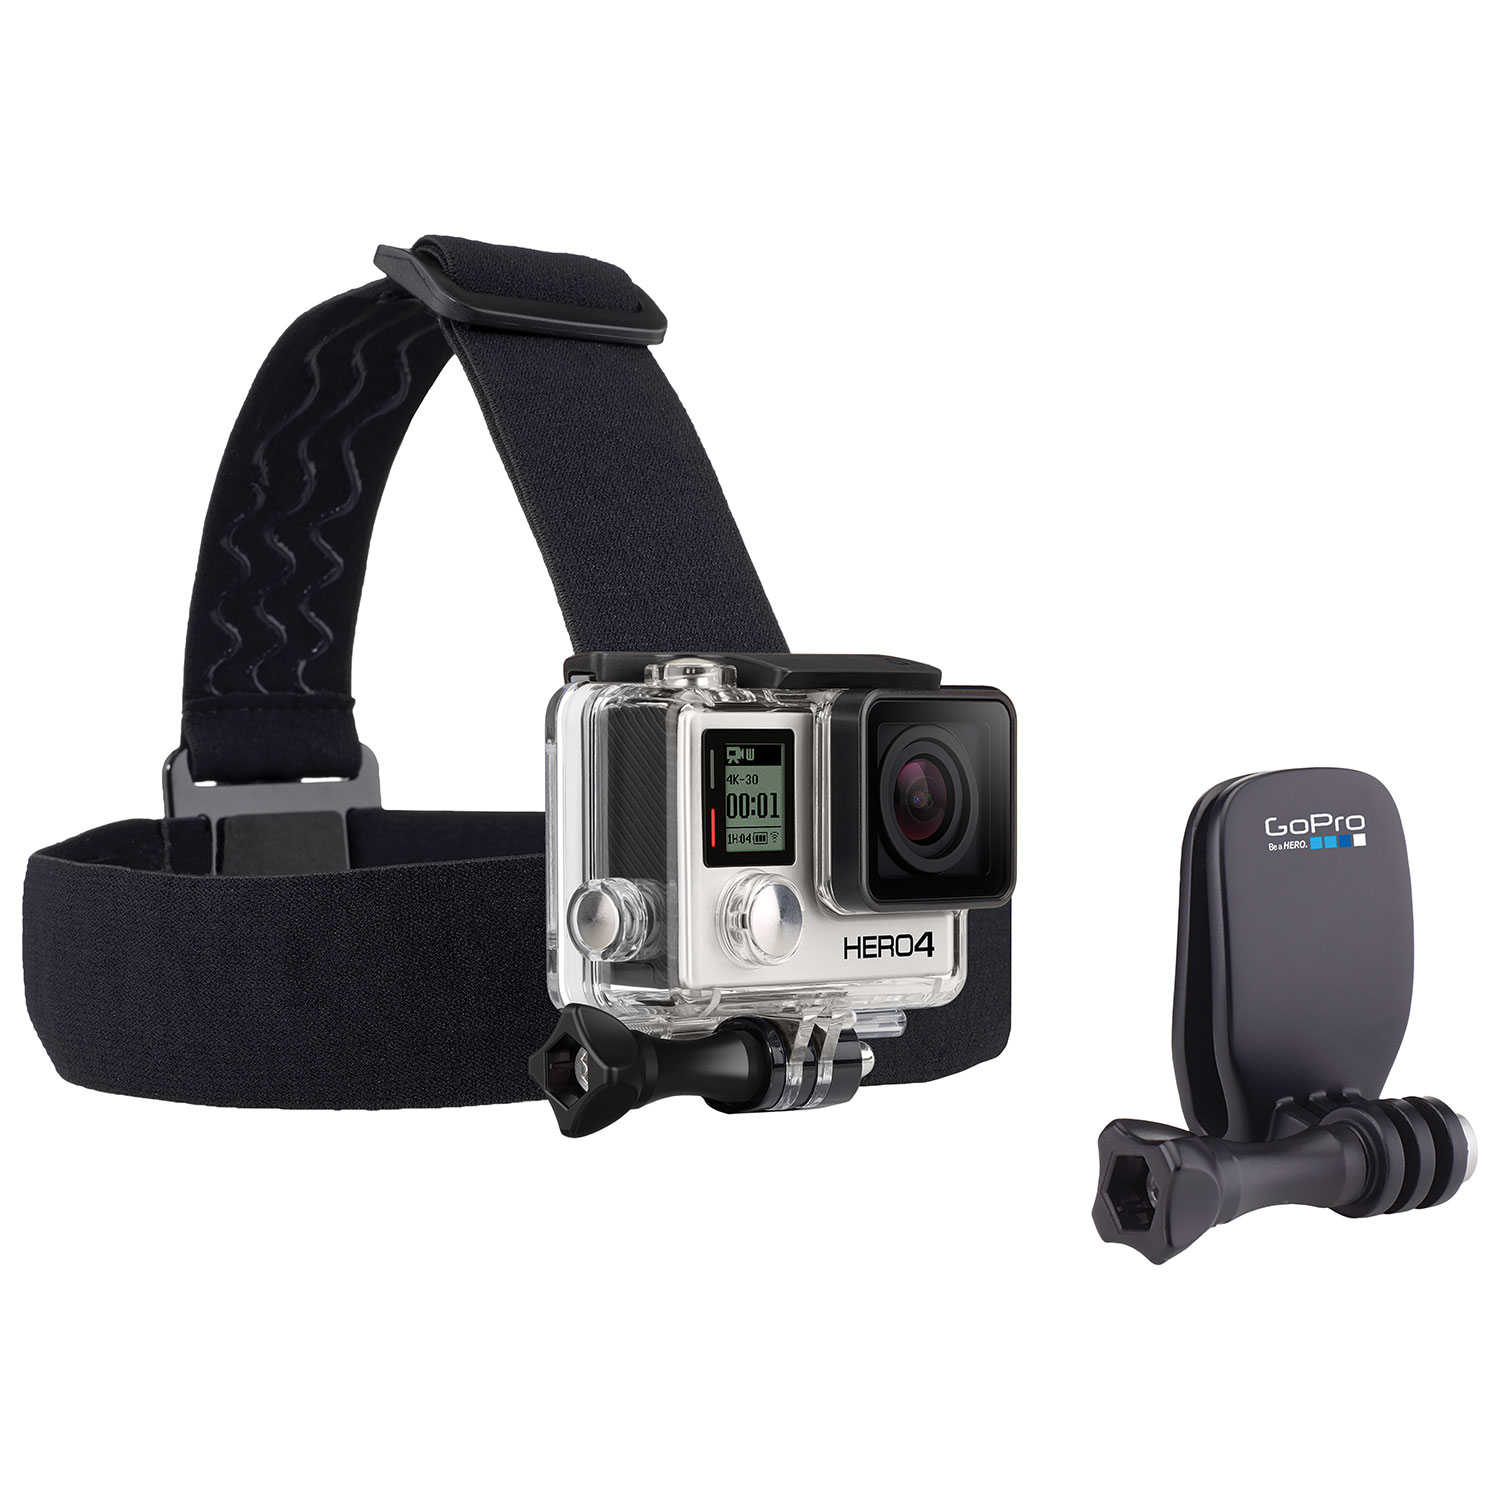 cc701001b4e GoPro Head Strap with QuickClip (ACHOM-001)   Camera Mounts - Best Buy  Canada